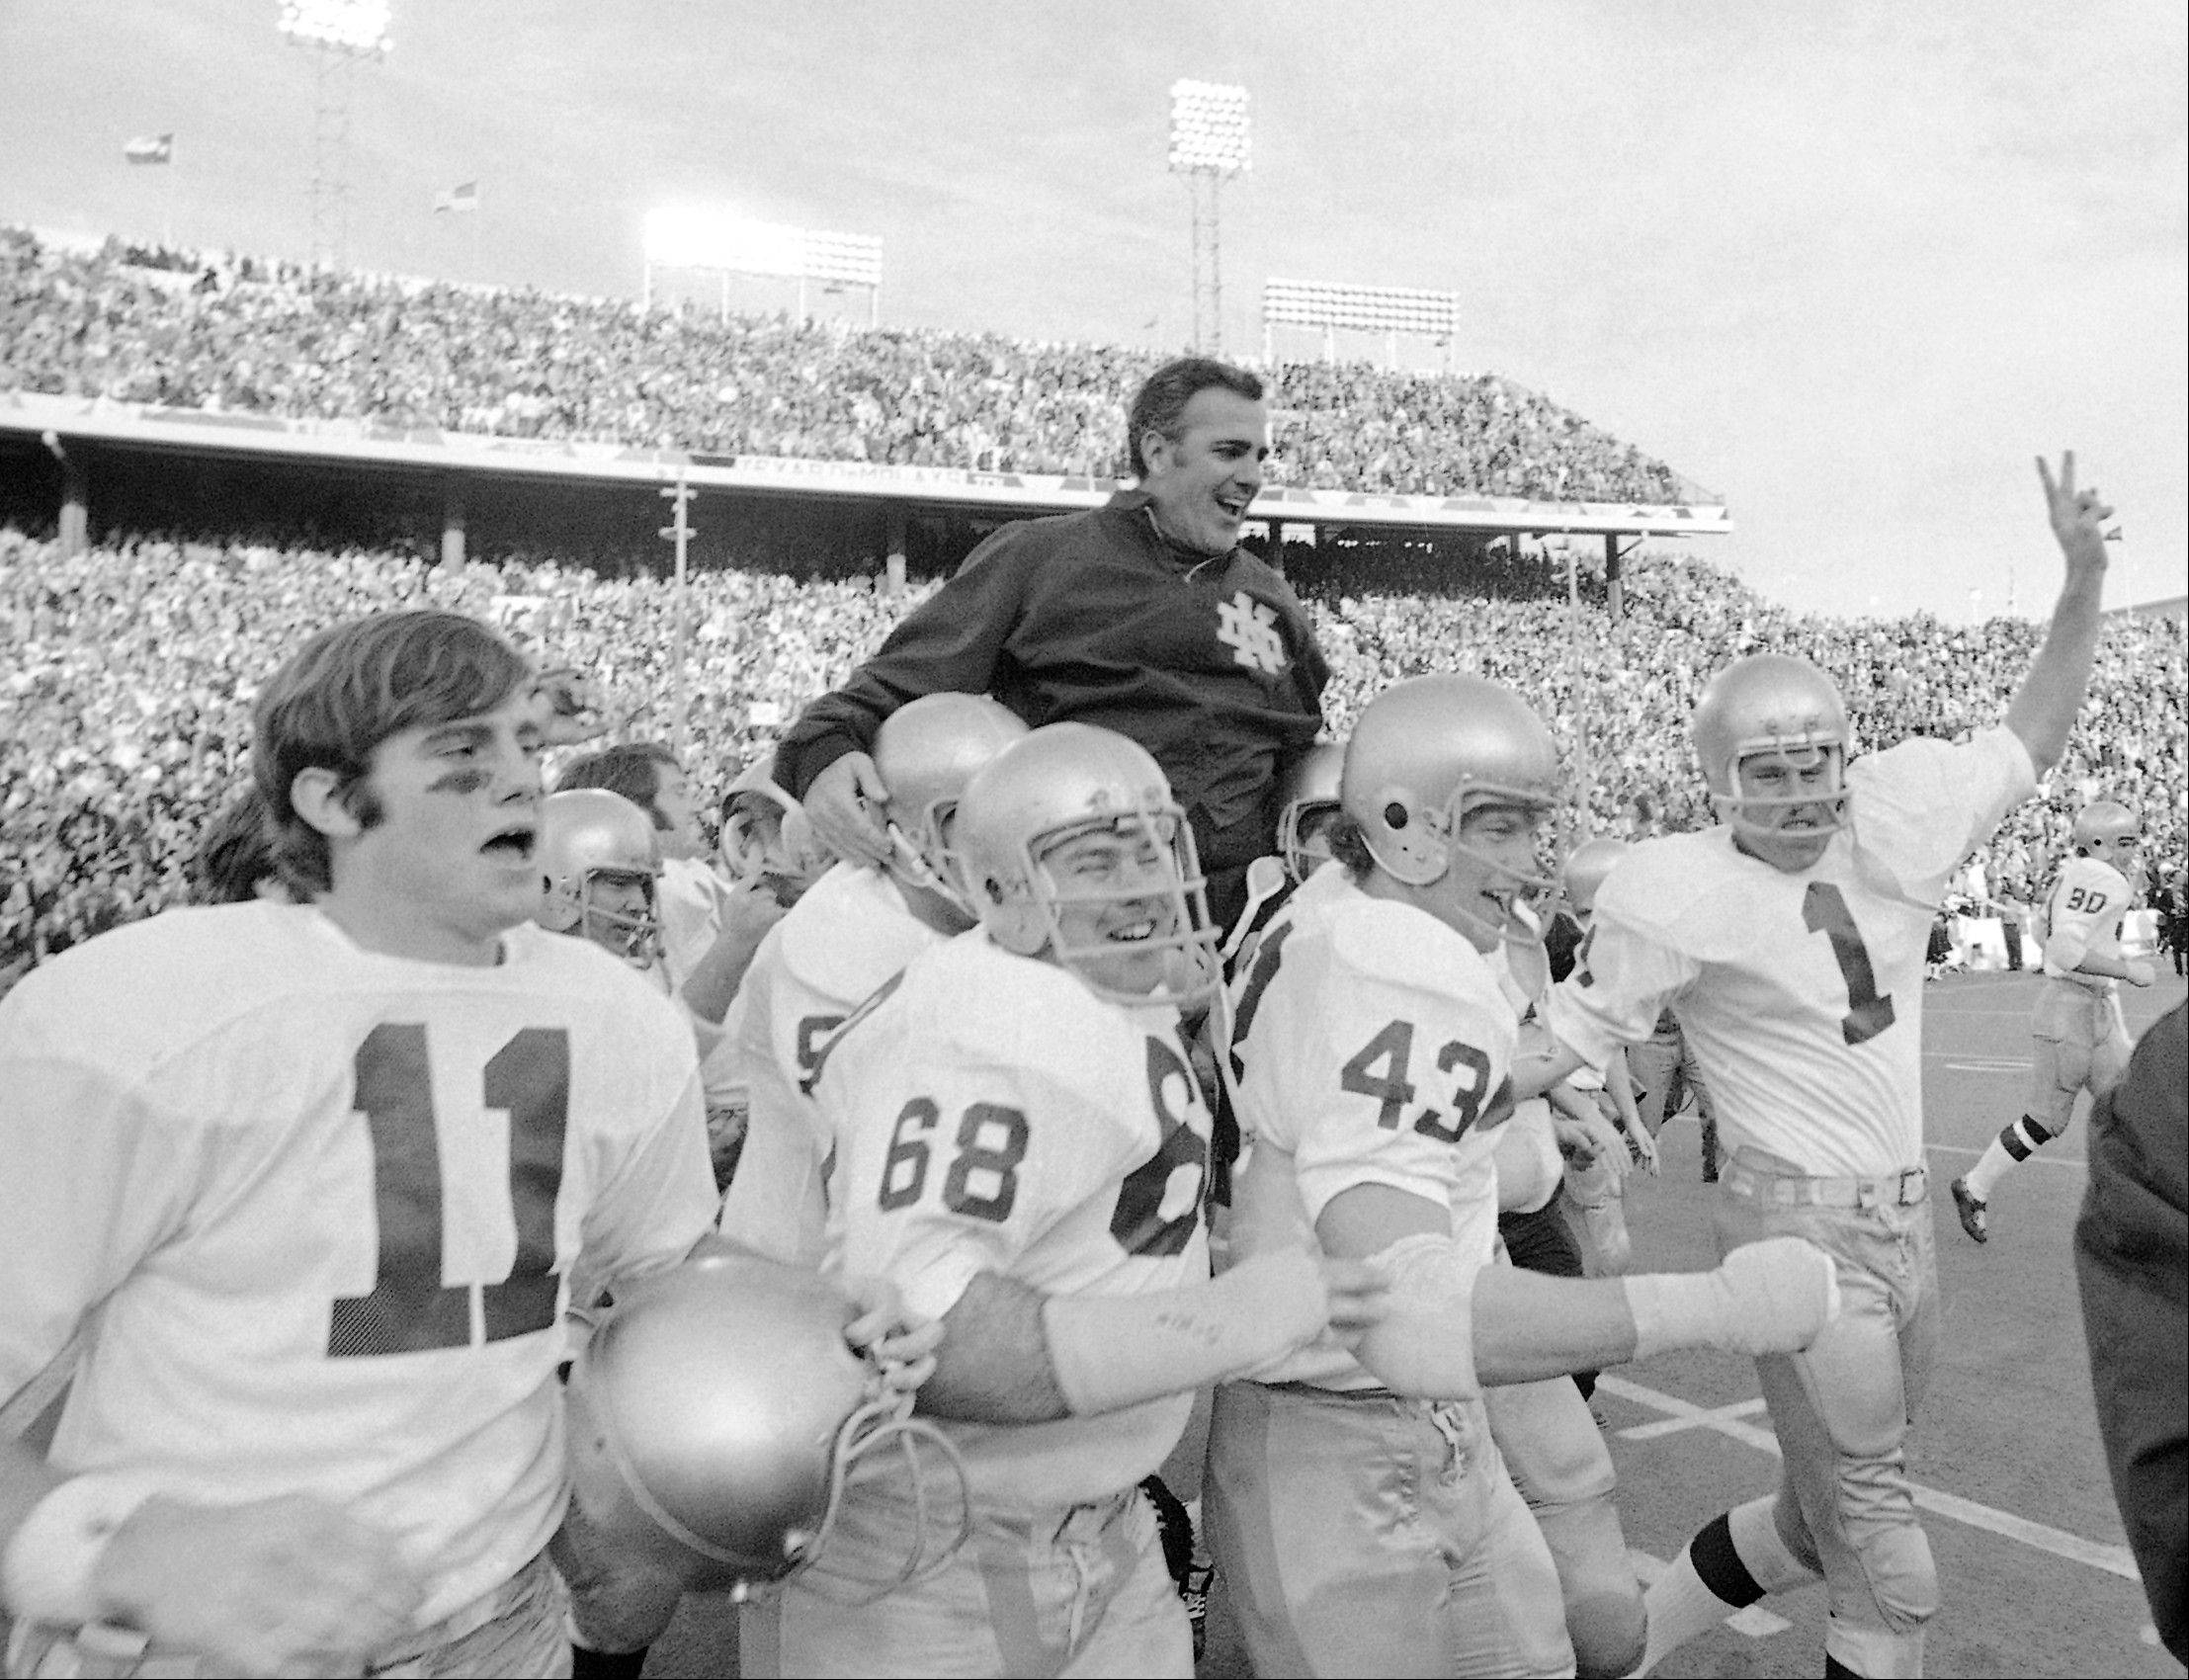 Notre Dame coach Ara Parseghian is carried off the field by his victorious players after the Irish beat Texas 24-11 in the Cotton Bowl in Dallas. At a time when college football was generally considered the domain of eastern blue bloods, Notre Dame and Alabama were upstart teams that gave blue collar fans a chance to tweak the elite. About 90 years later, the Fighting Irish and Crimson Tide are the elite -- two of college football's signature programs, set to play a national championship next Monday in Miami that could break records for television viewership.